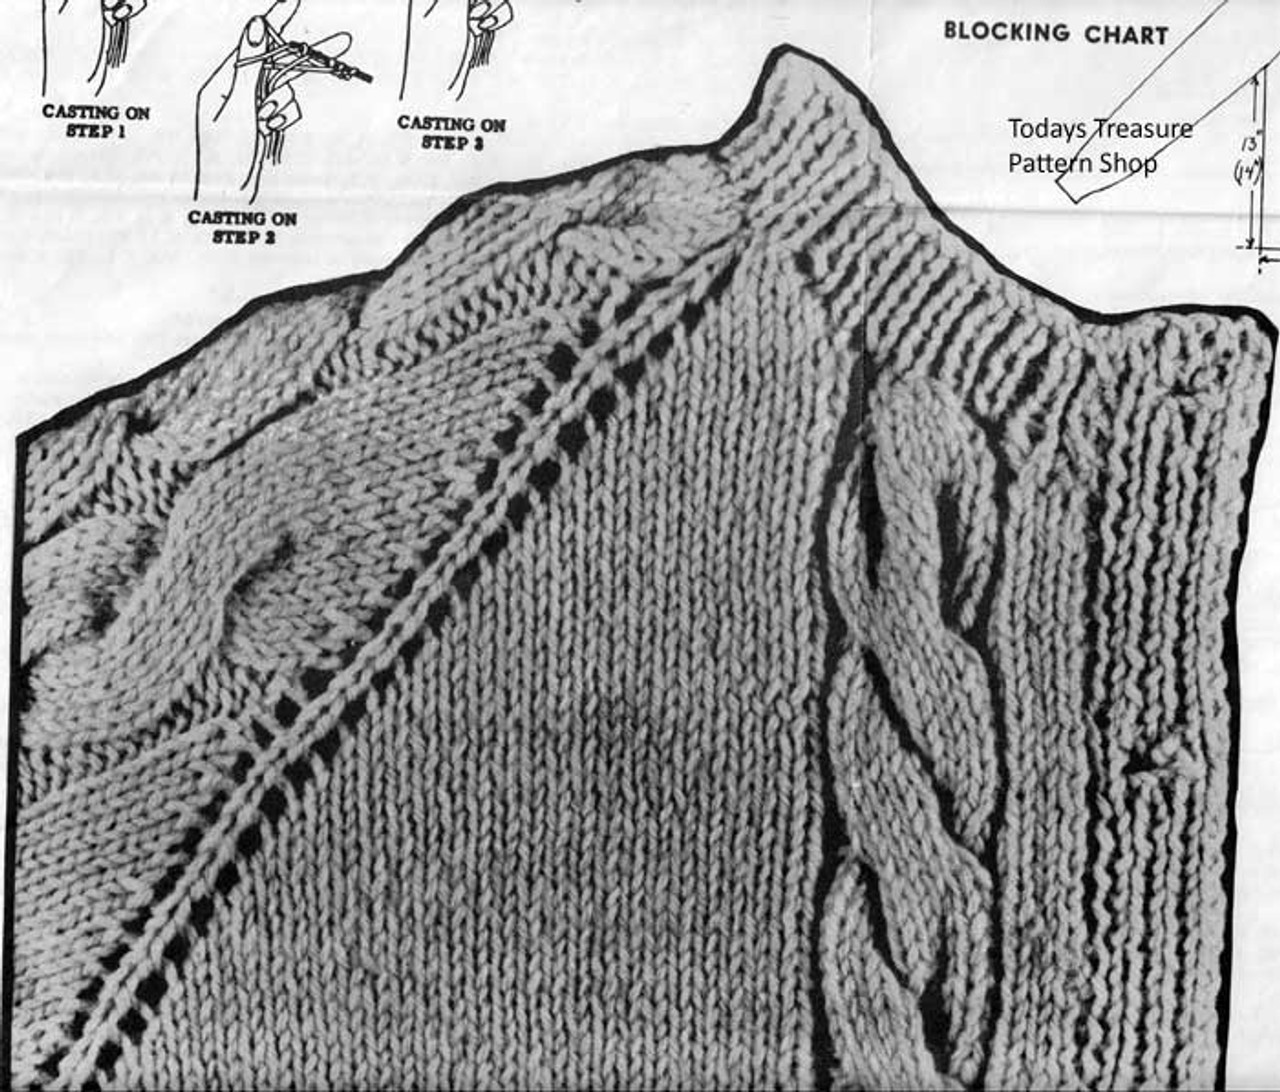 Cable Jacket Knitted Illustration